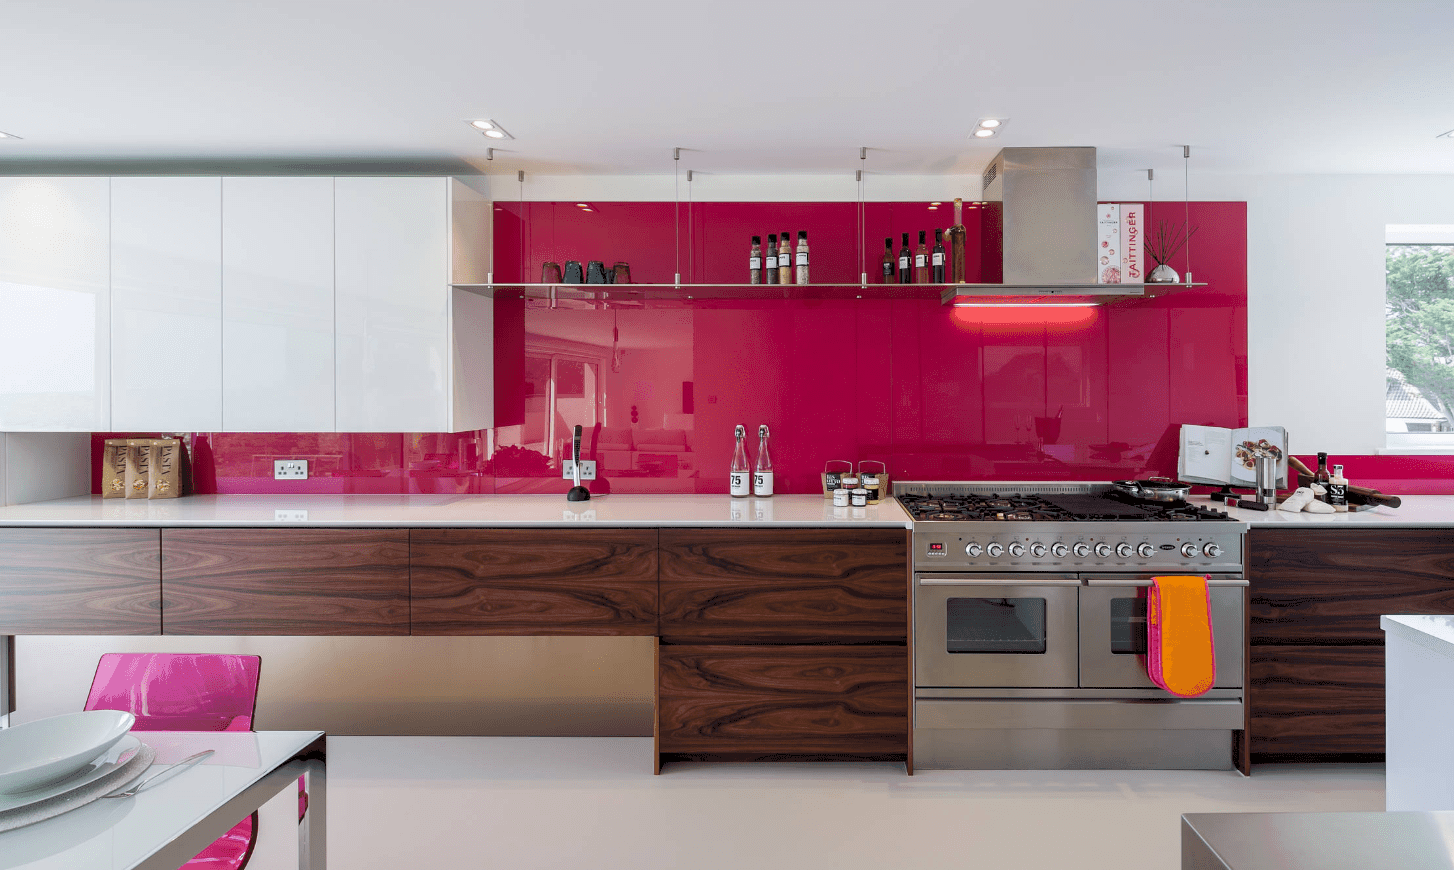 Elegant kitchen highlighted by a glossy magenta backsplash. It has white upper cabinetry and wood stained lower cabinetry topped with white marble counter.